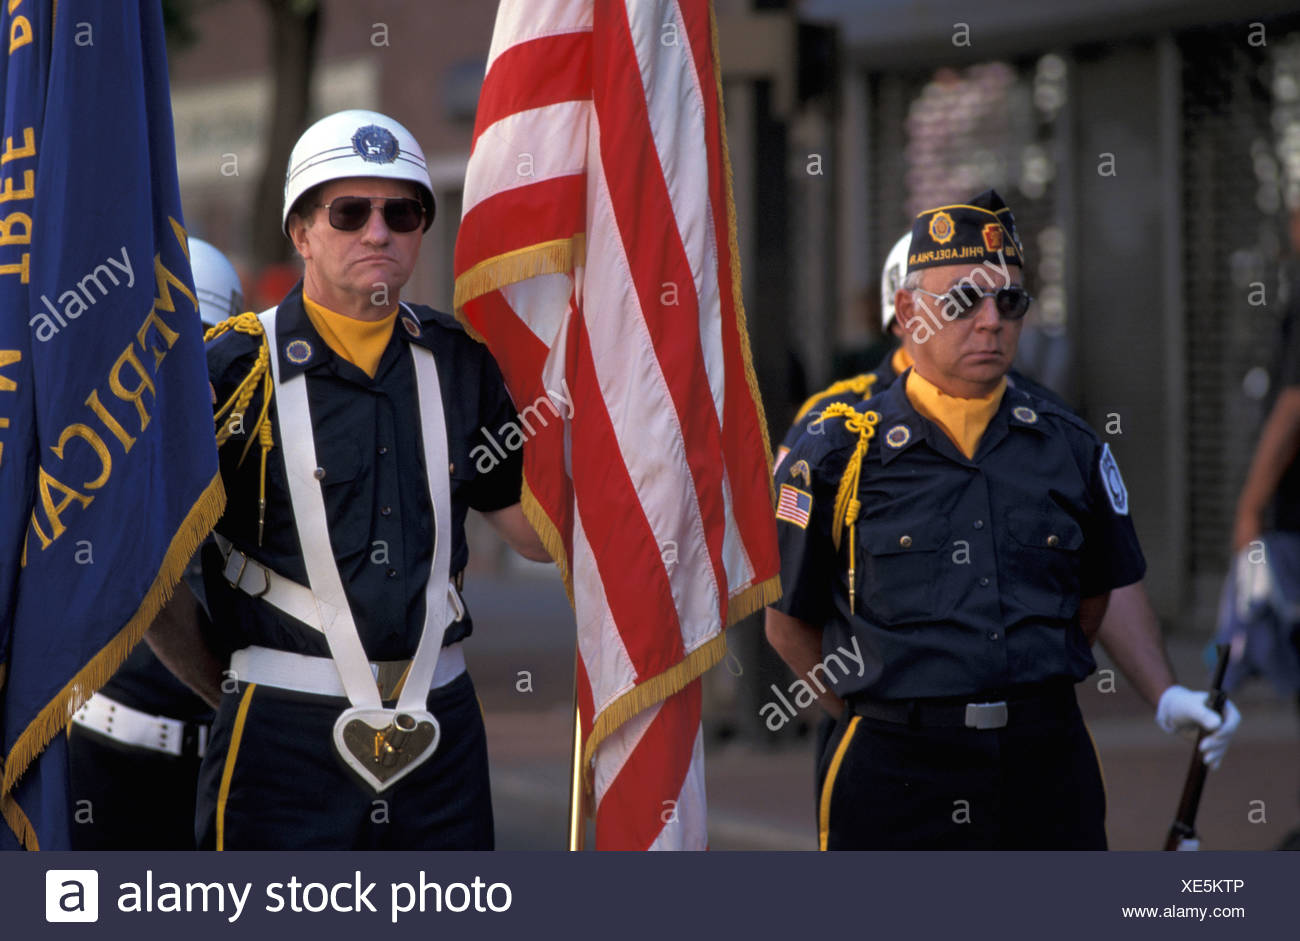 veteran Memorial Day parade relocation move military patriotism uniforms former soldiers war Downtown Phila - Stock Image